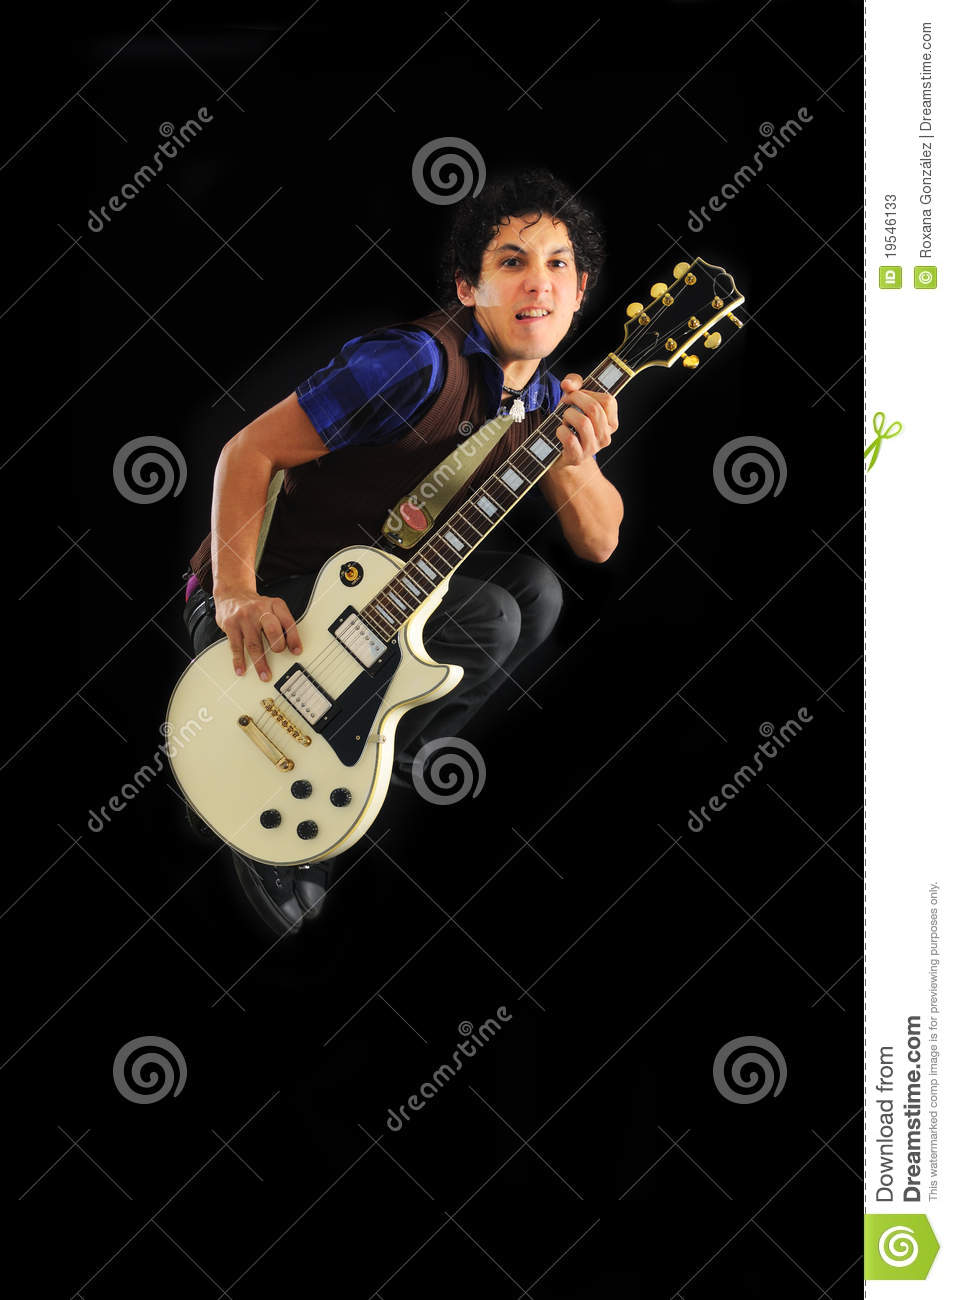 guy jumping with electric guitar isolated stock photos image 19546133. Black Bedroom Furniture Sets. Home Design Ideas